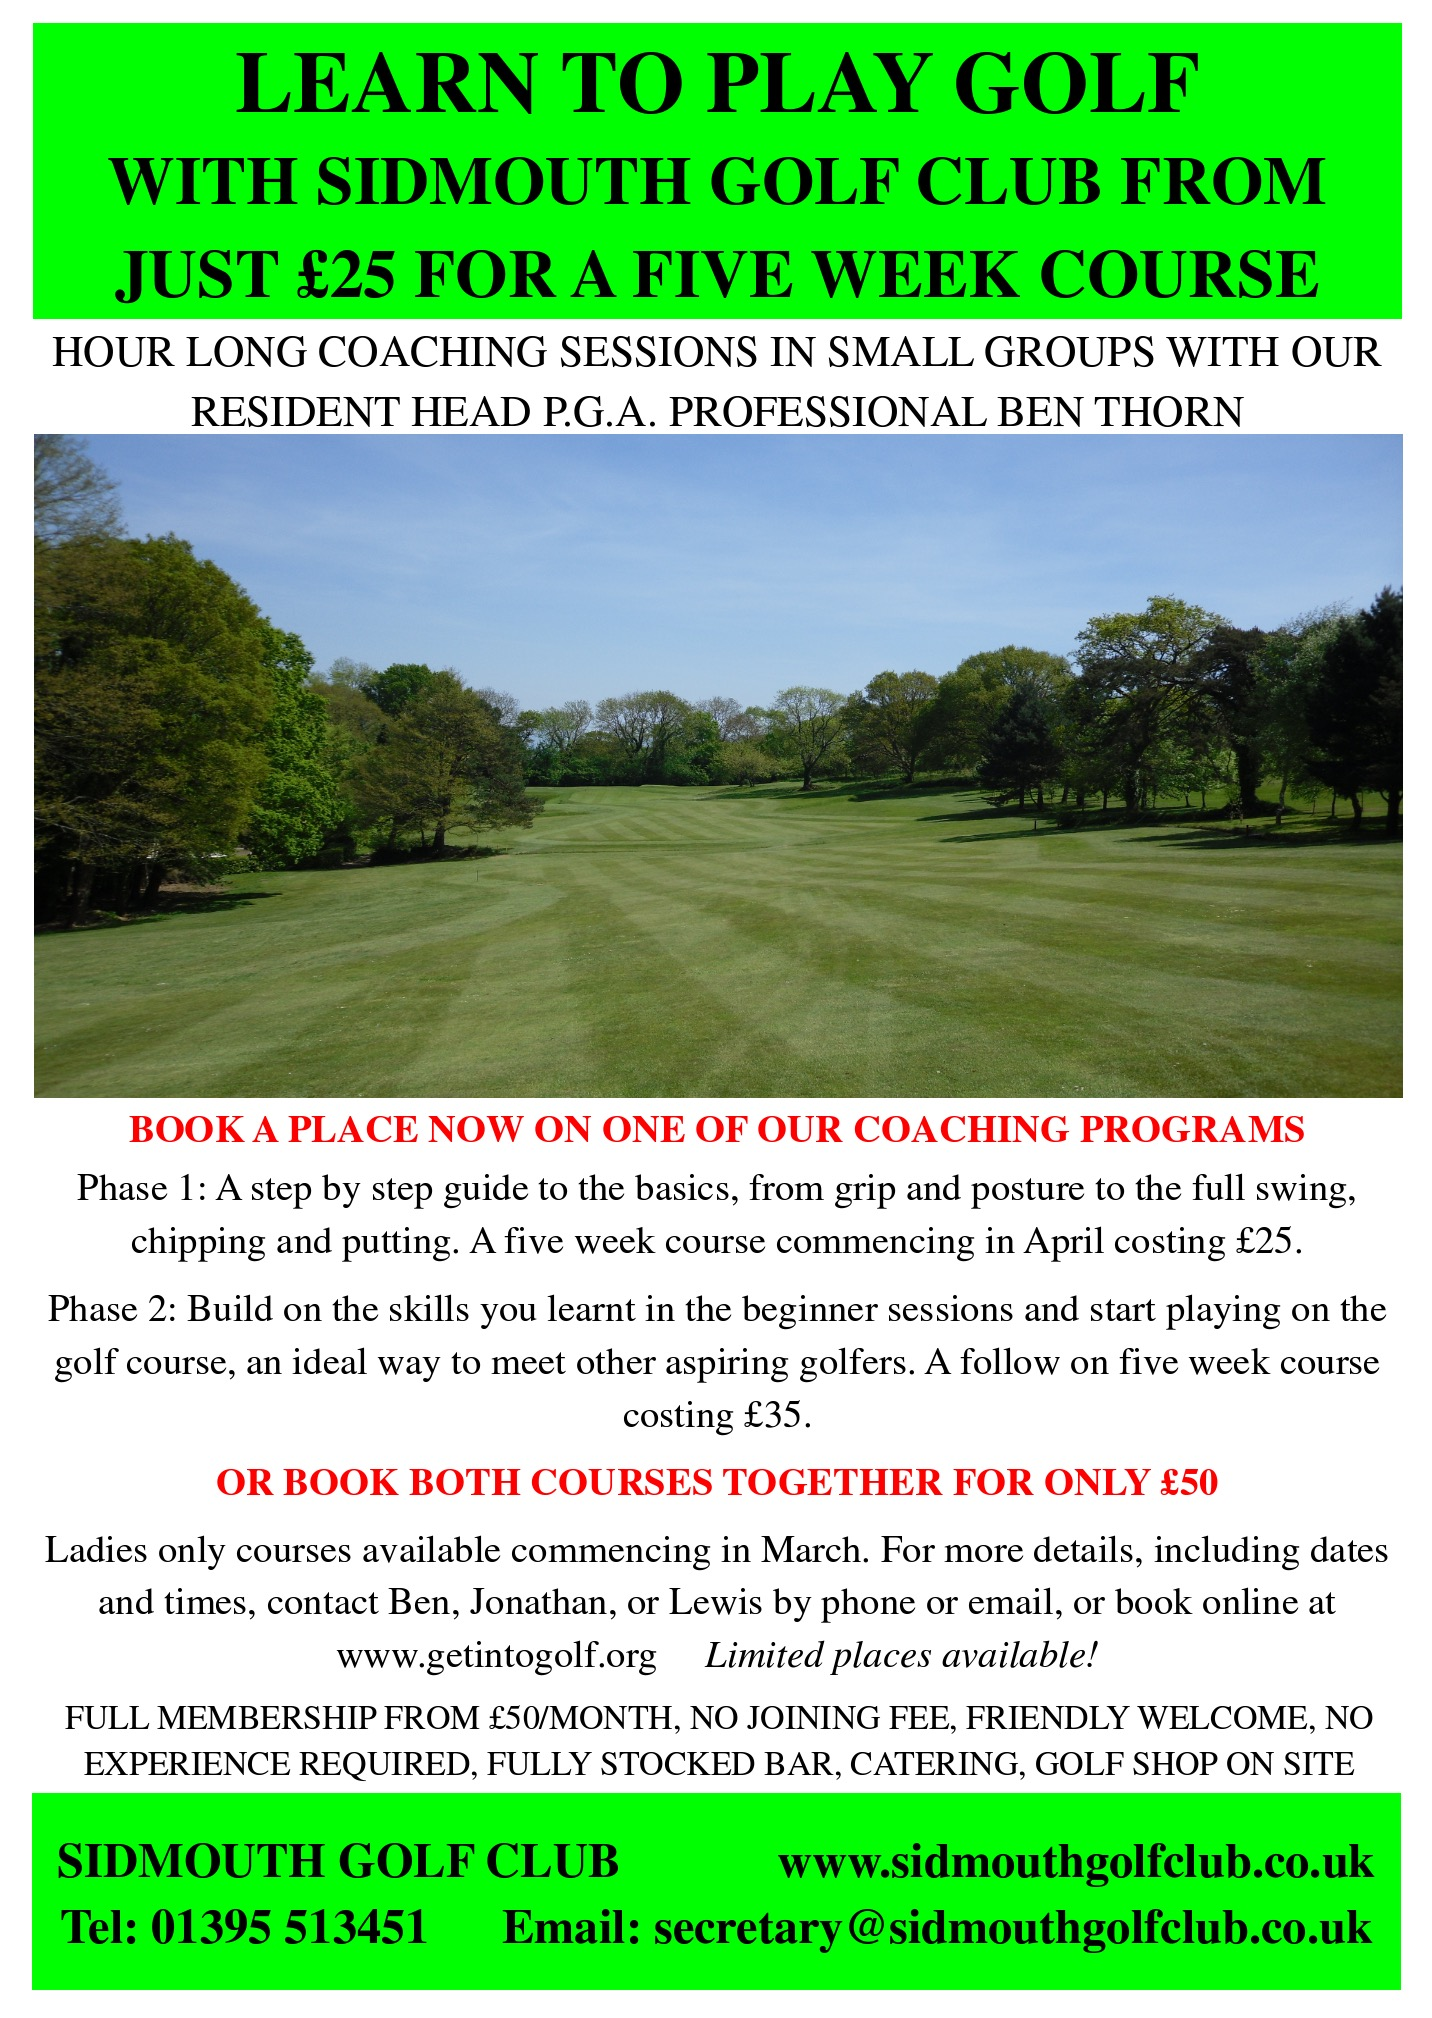 Getintogolf_poster_updated_feb_jpeg.PNG